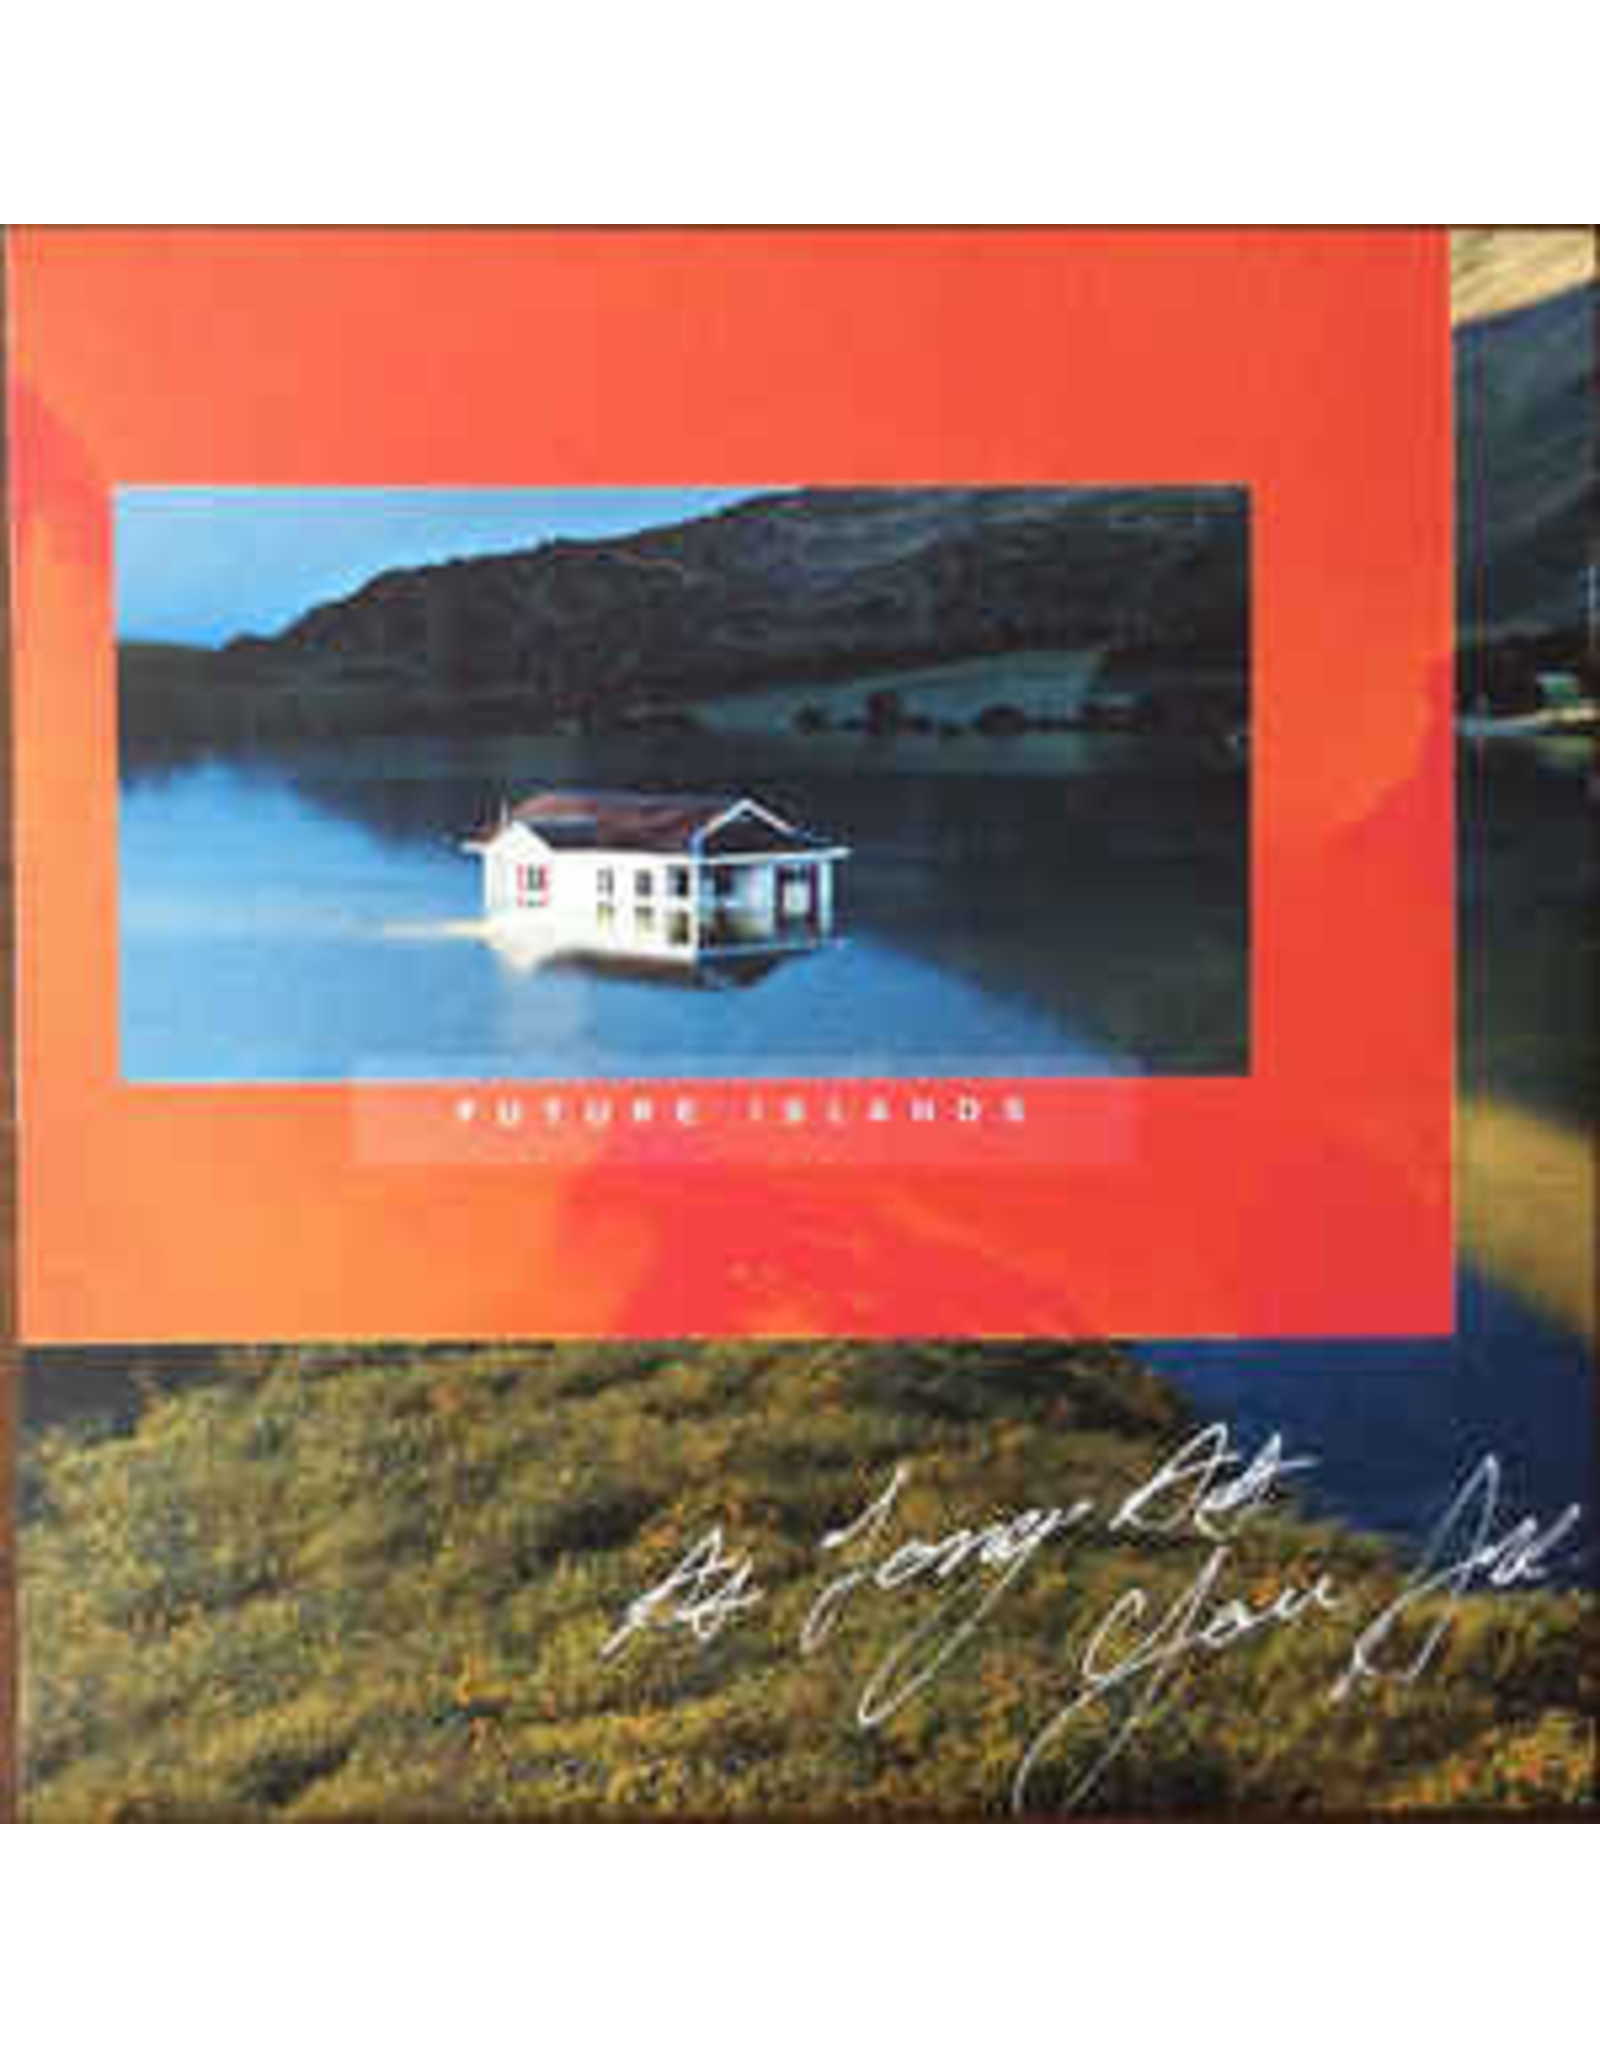 Future Islands - As Long As You Are LP (blue)